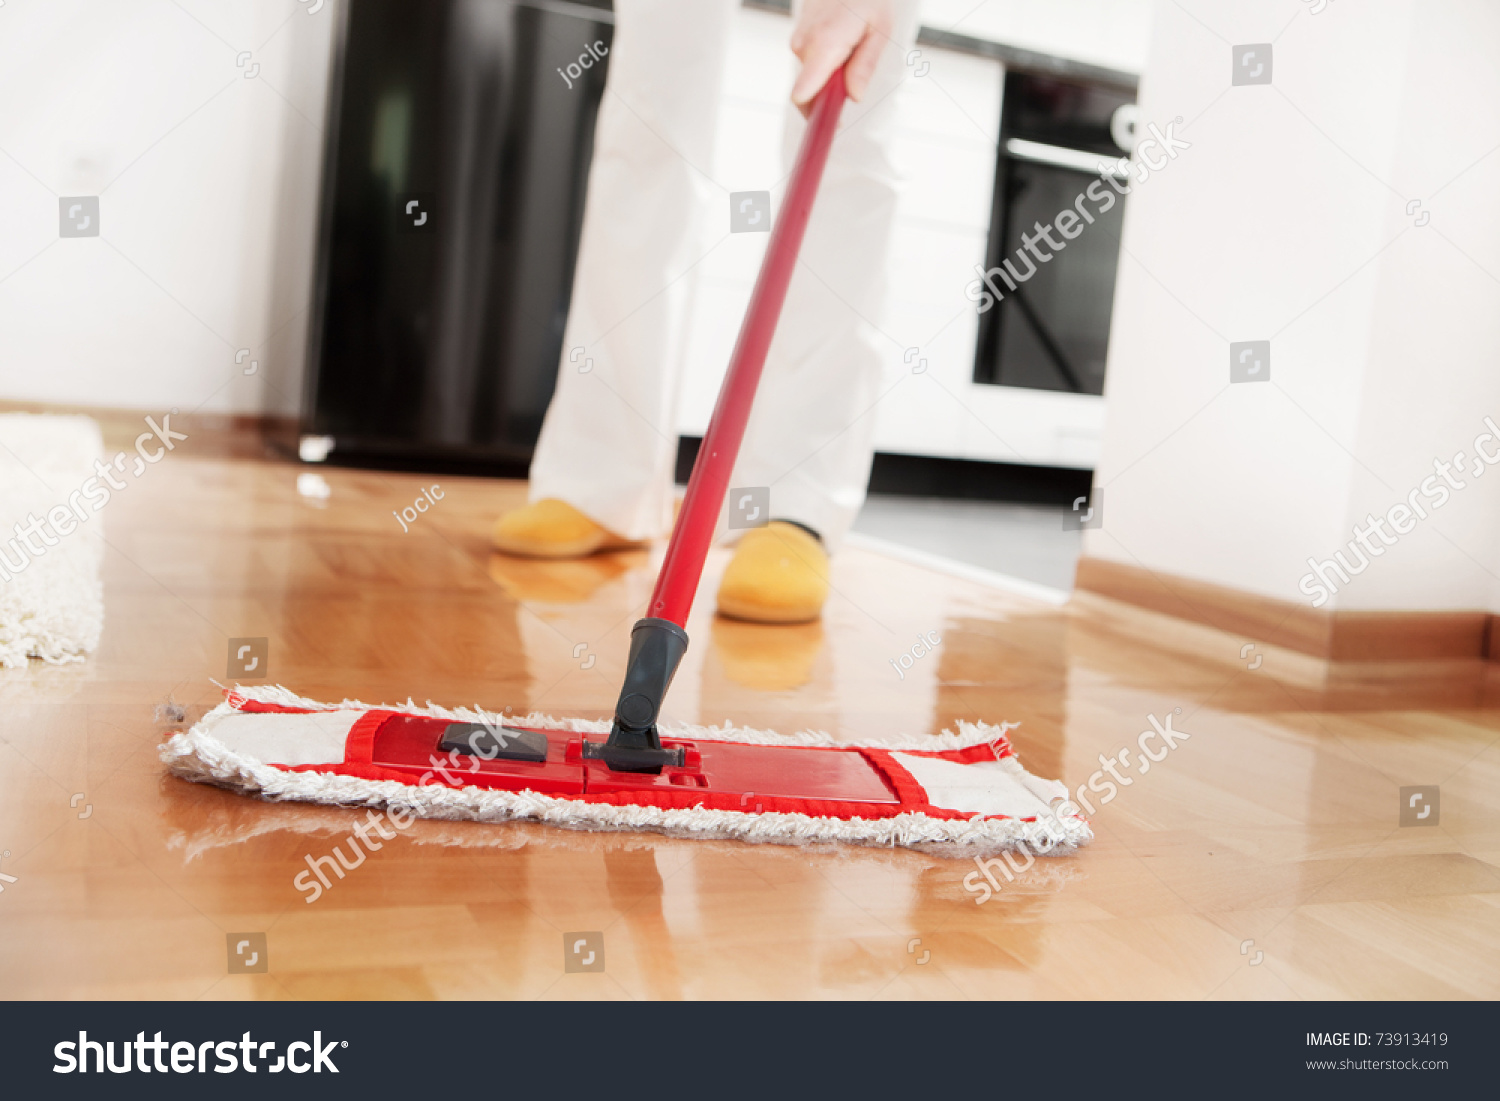 House cleaning mopping hardwood floor stock photo for House cleaning stock photos